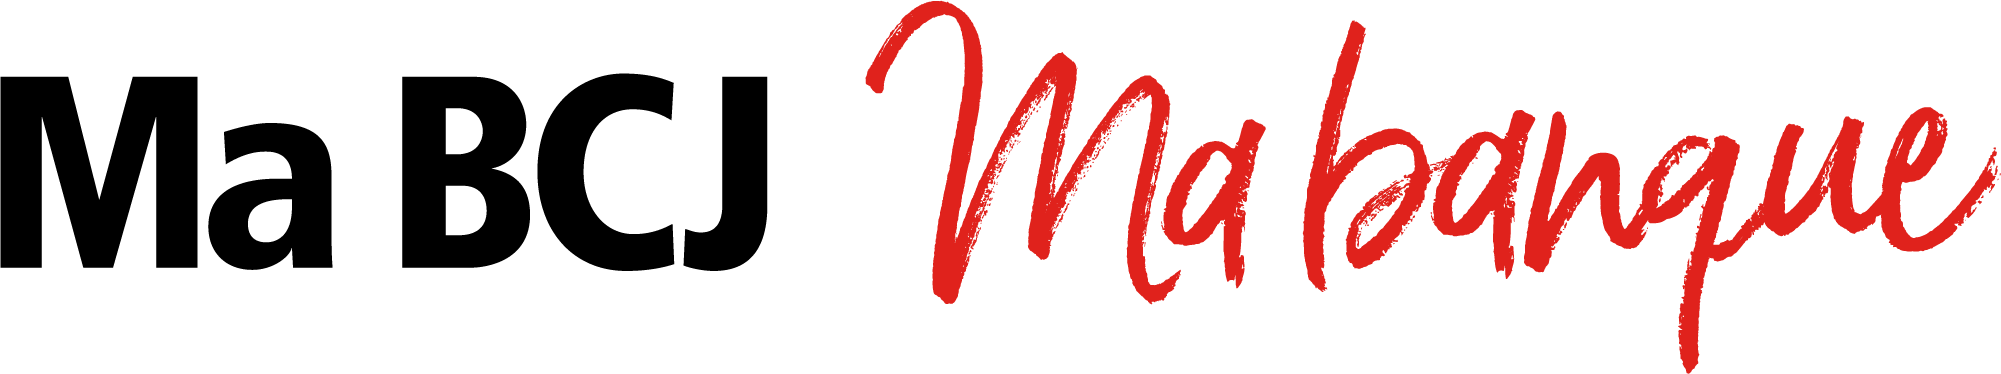 MaBCJMabanque_logo